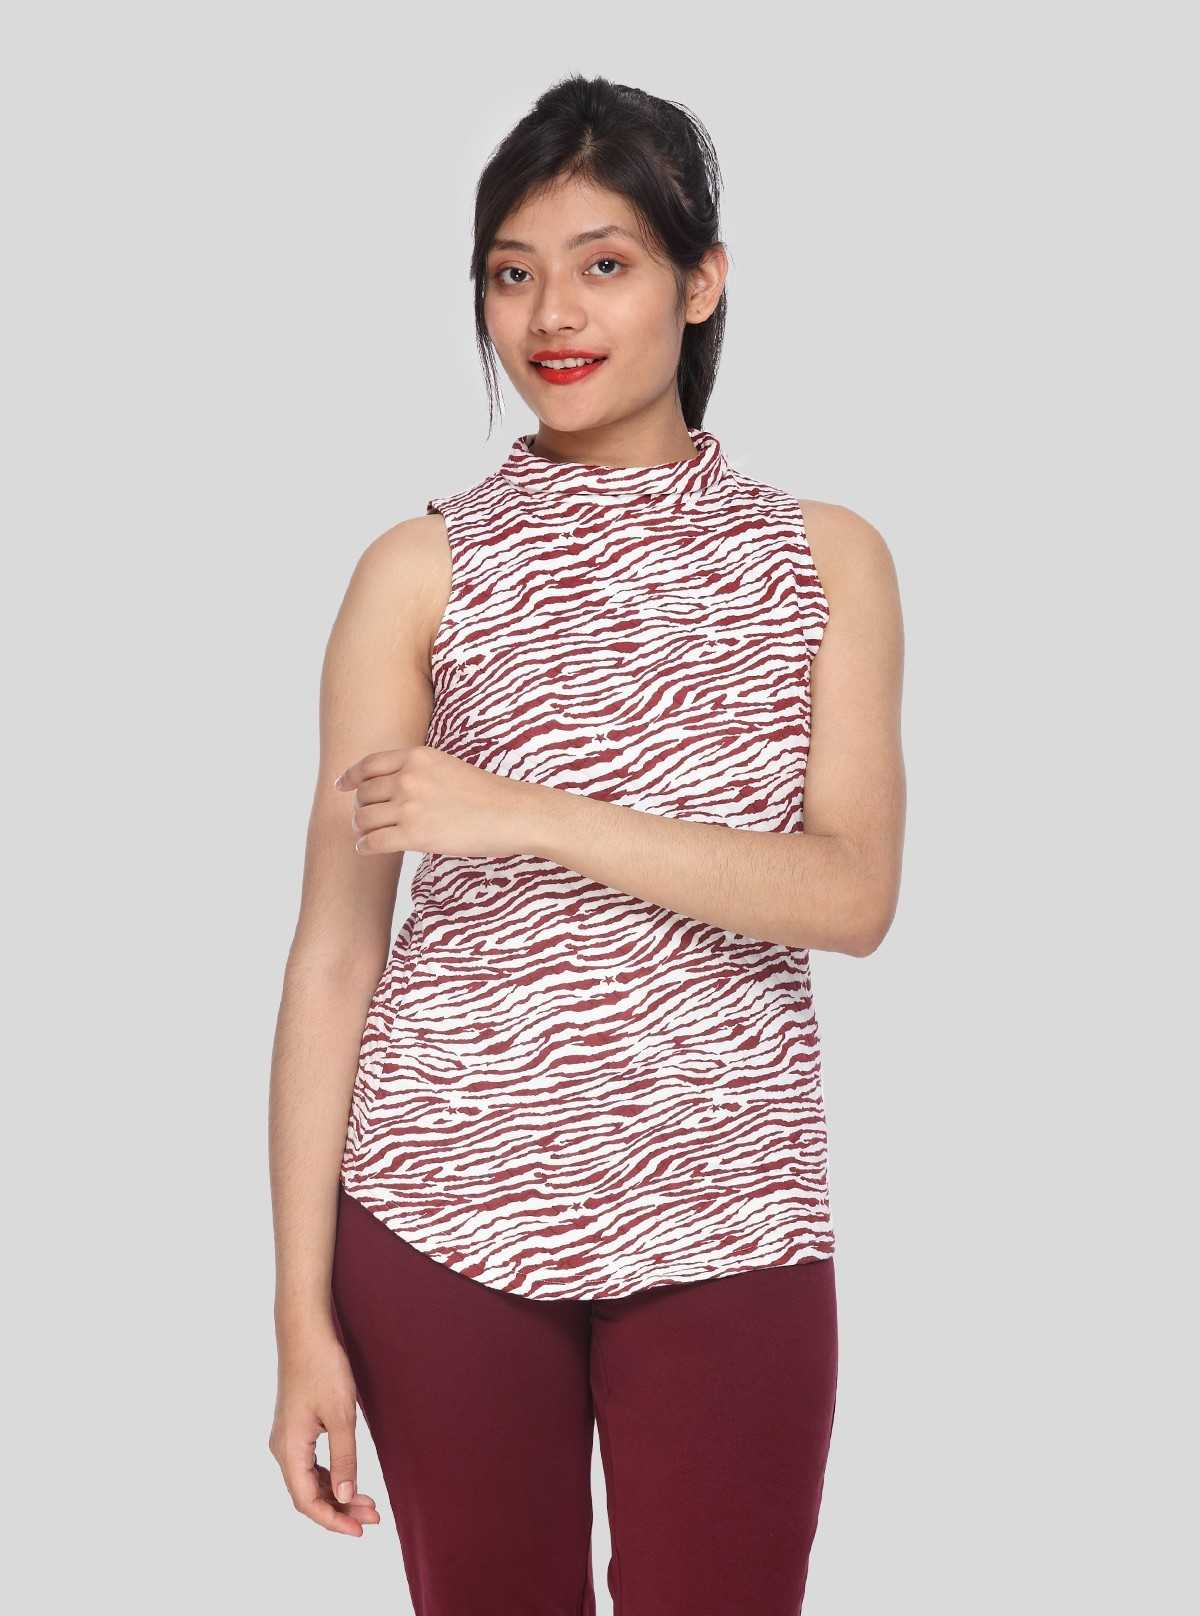 Graphica Print High Neck Top